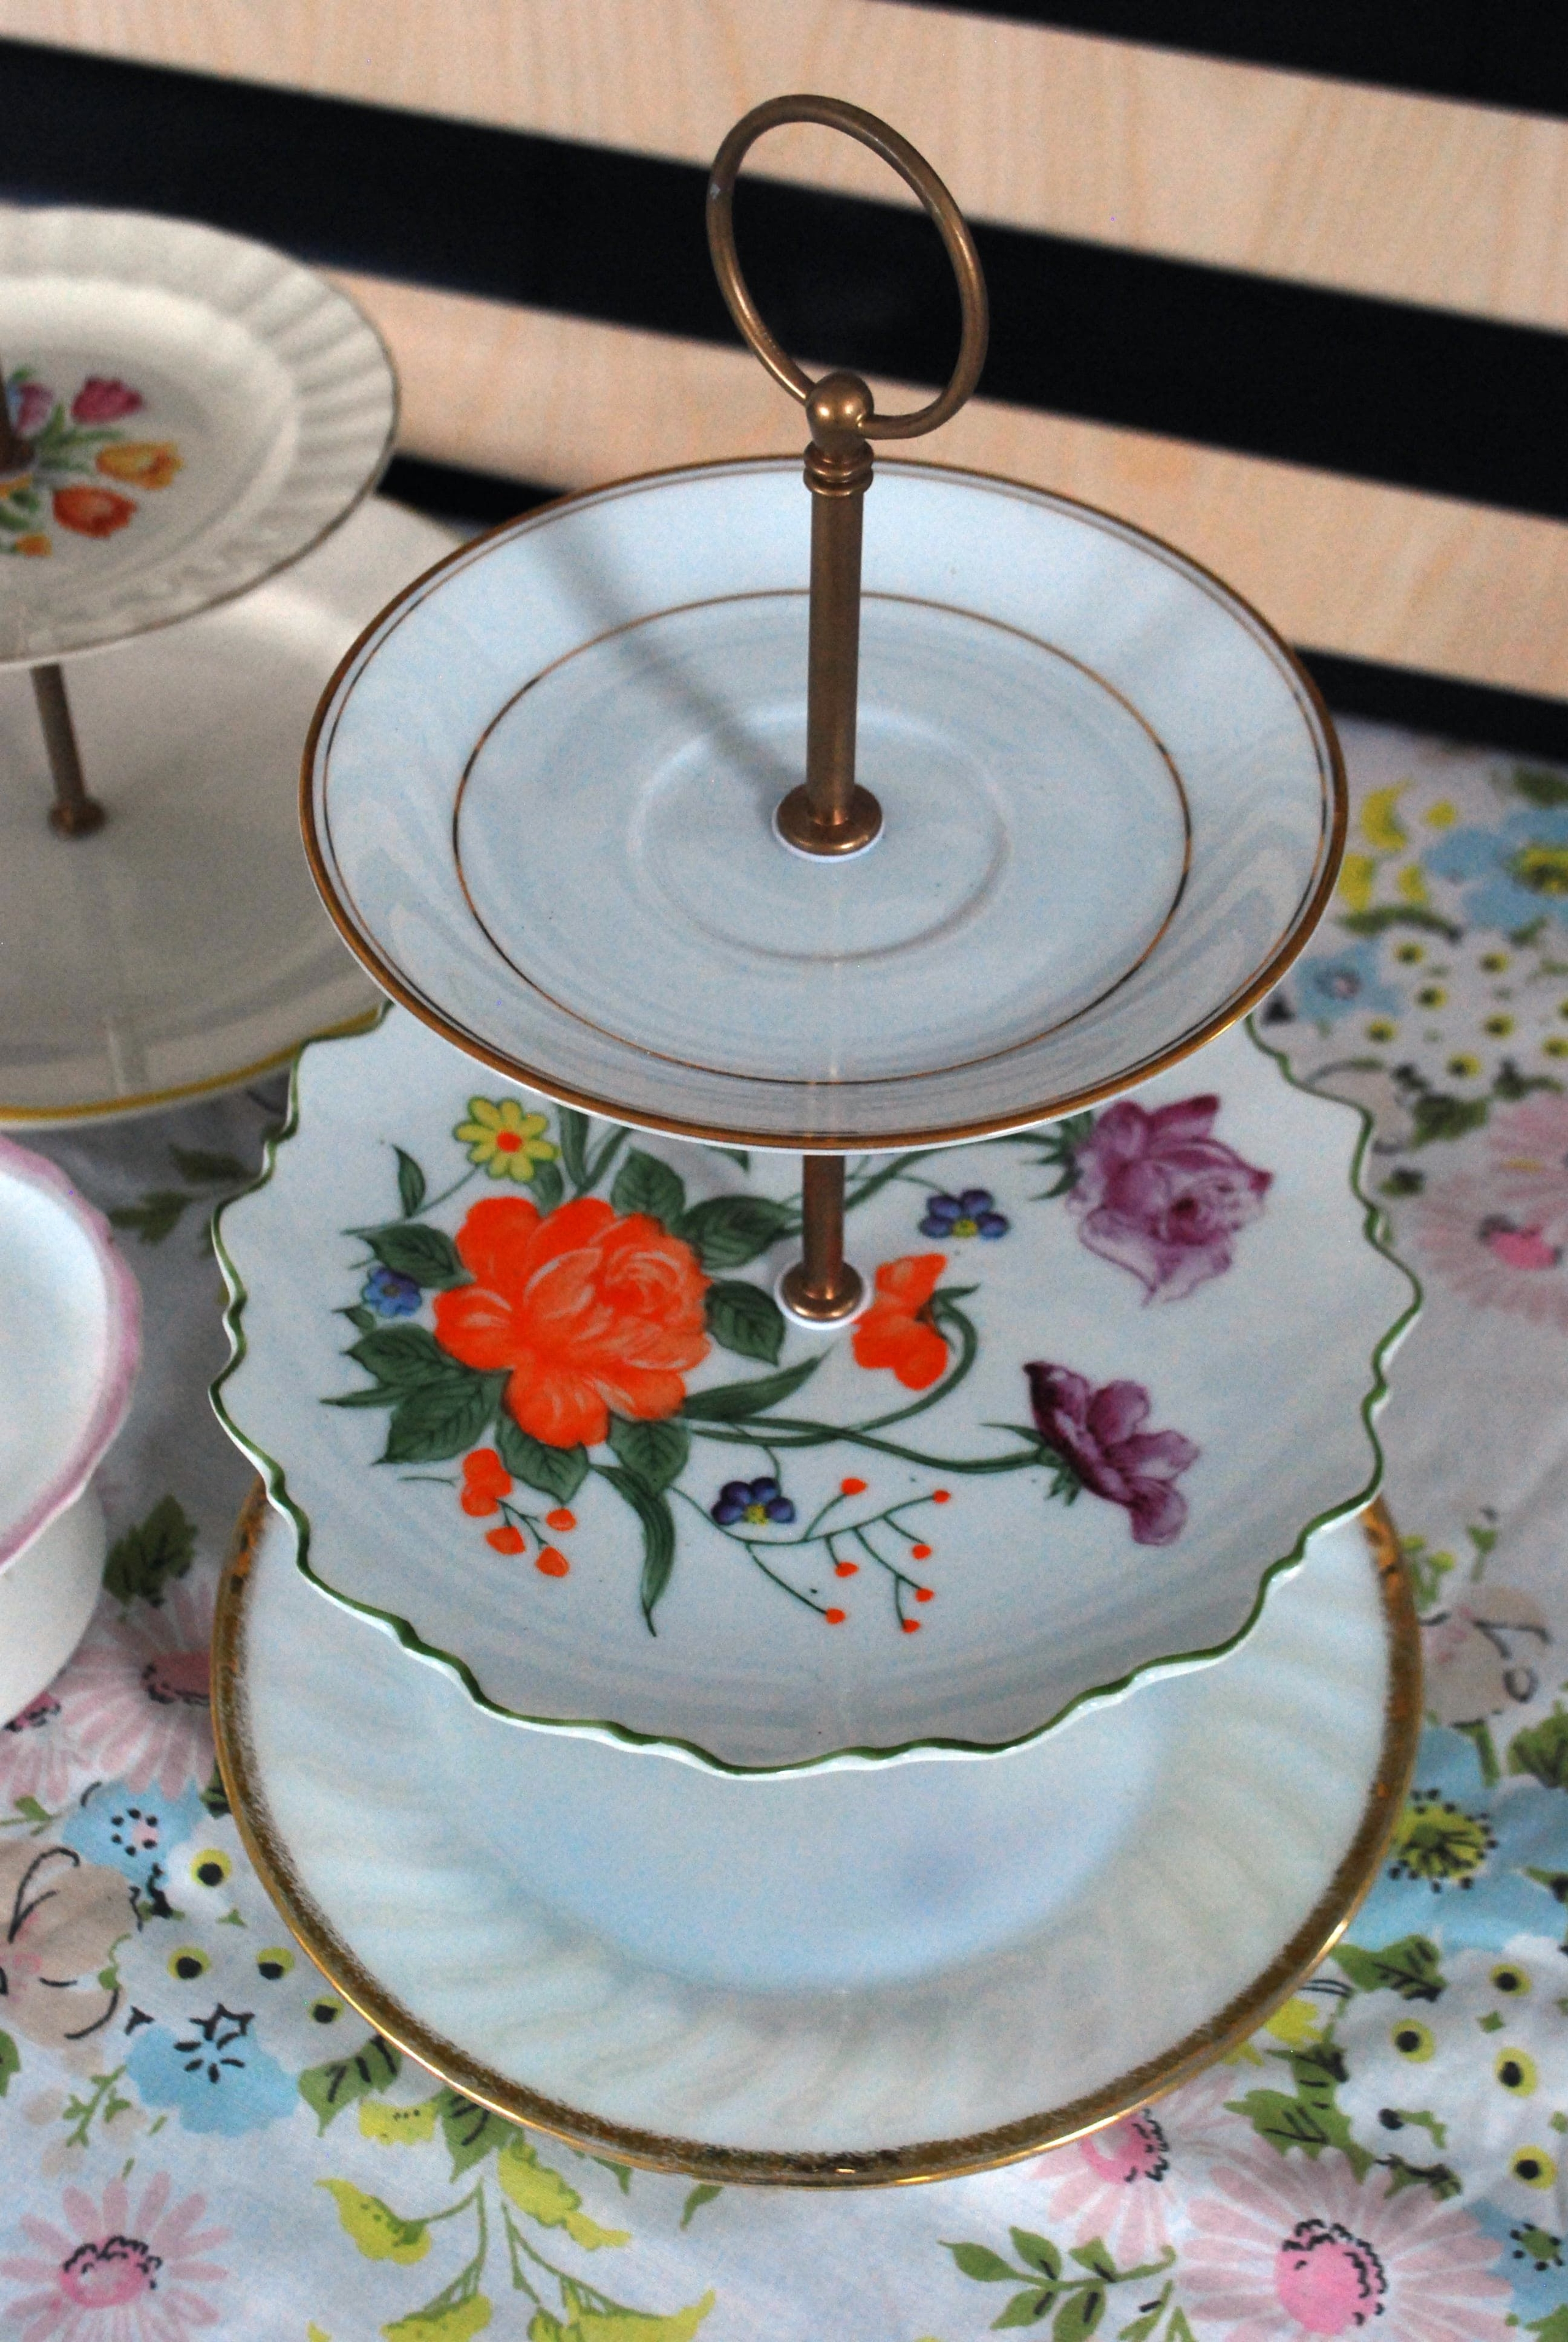 Decorative plates and stands 2 & Decorative Plates And Stands - Foter